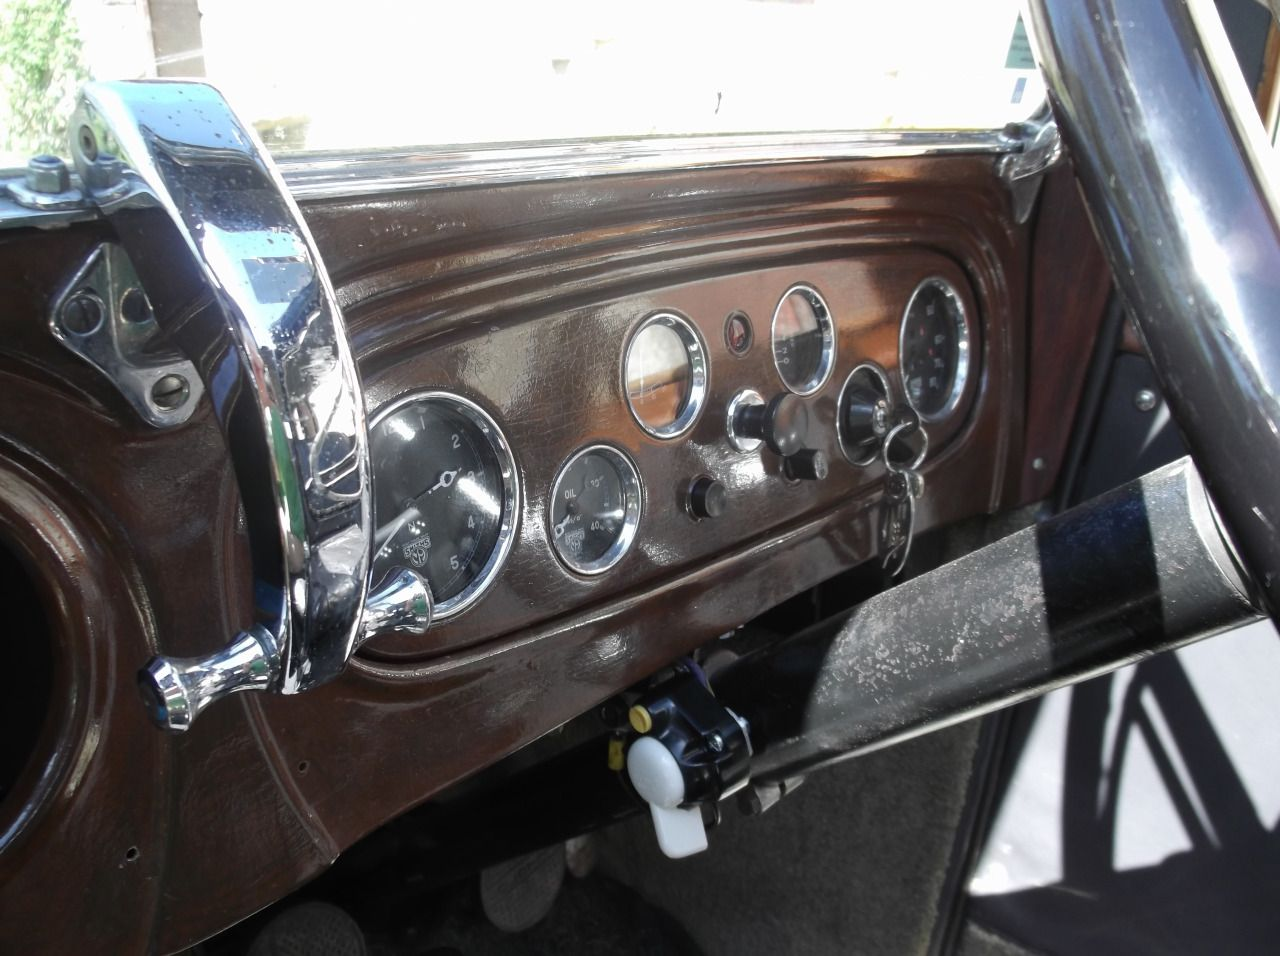 Dash of 1932 Austin 16/6 Berkeley, the one on my 12.8 York was the same